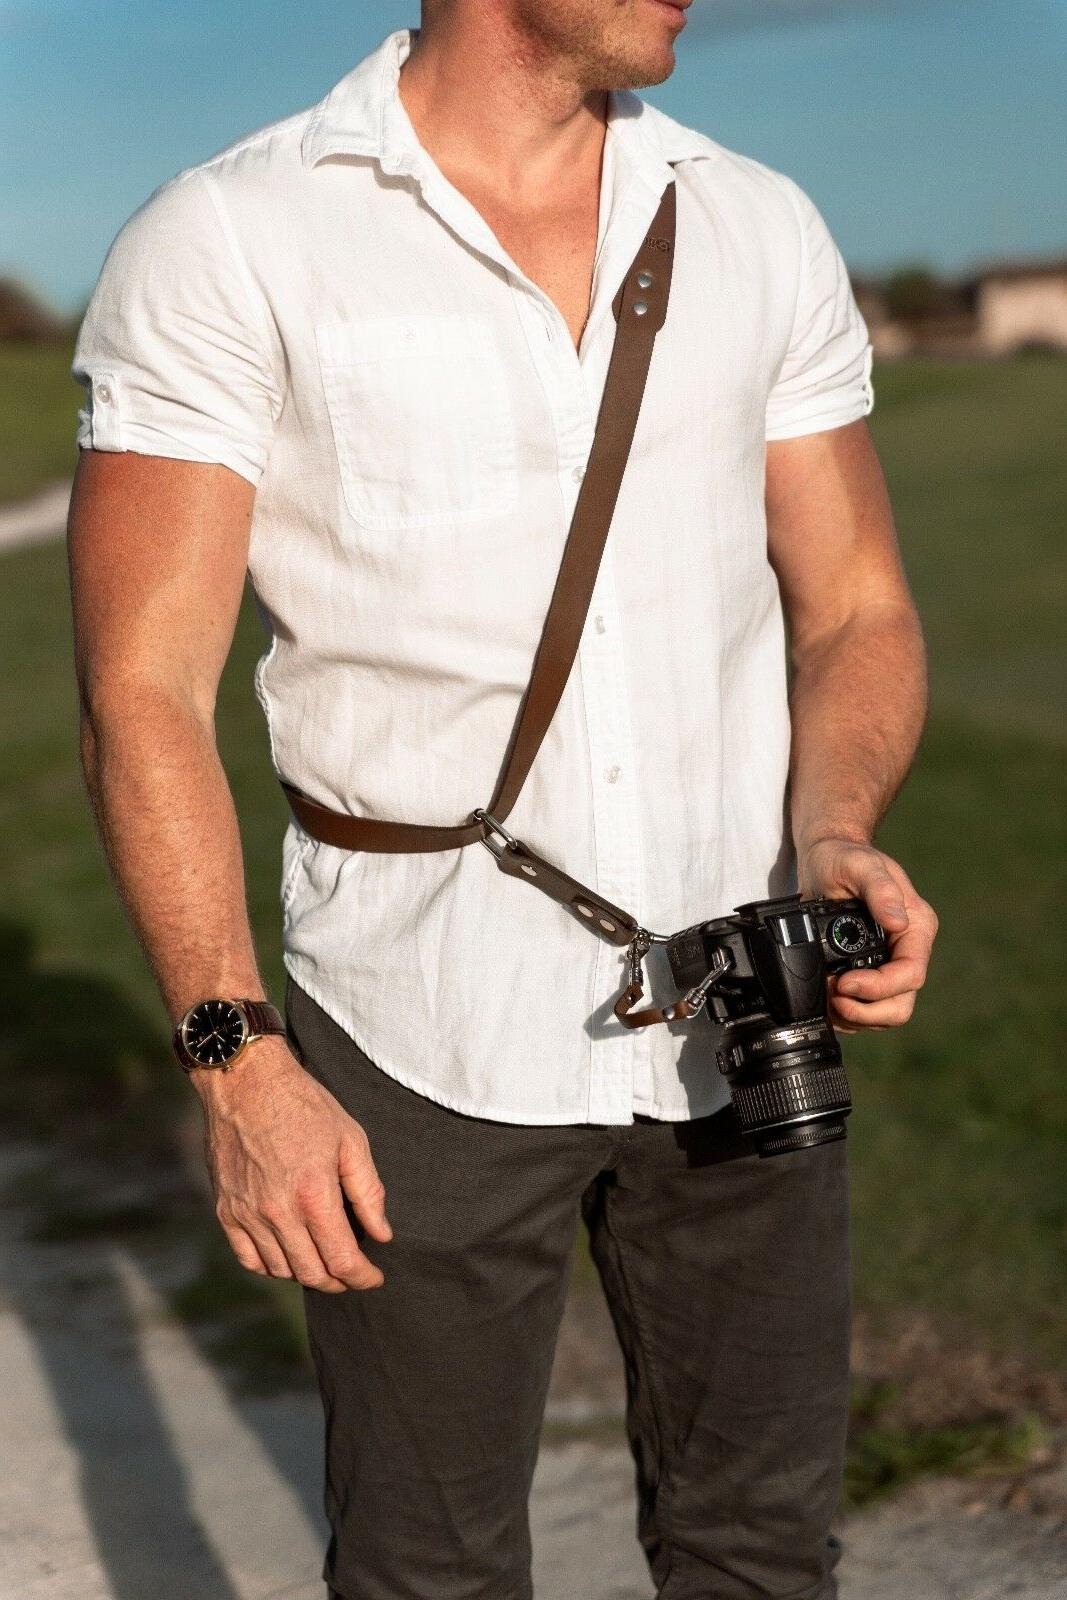 Sling Quick Leather Adjustable